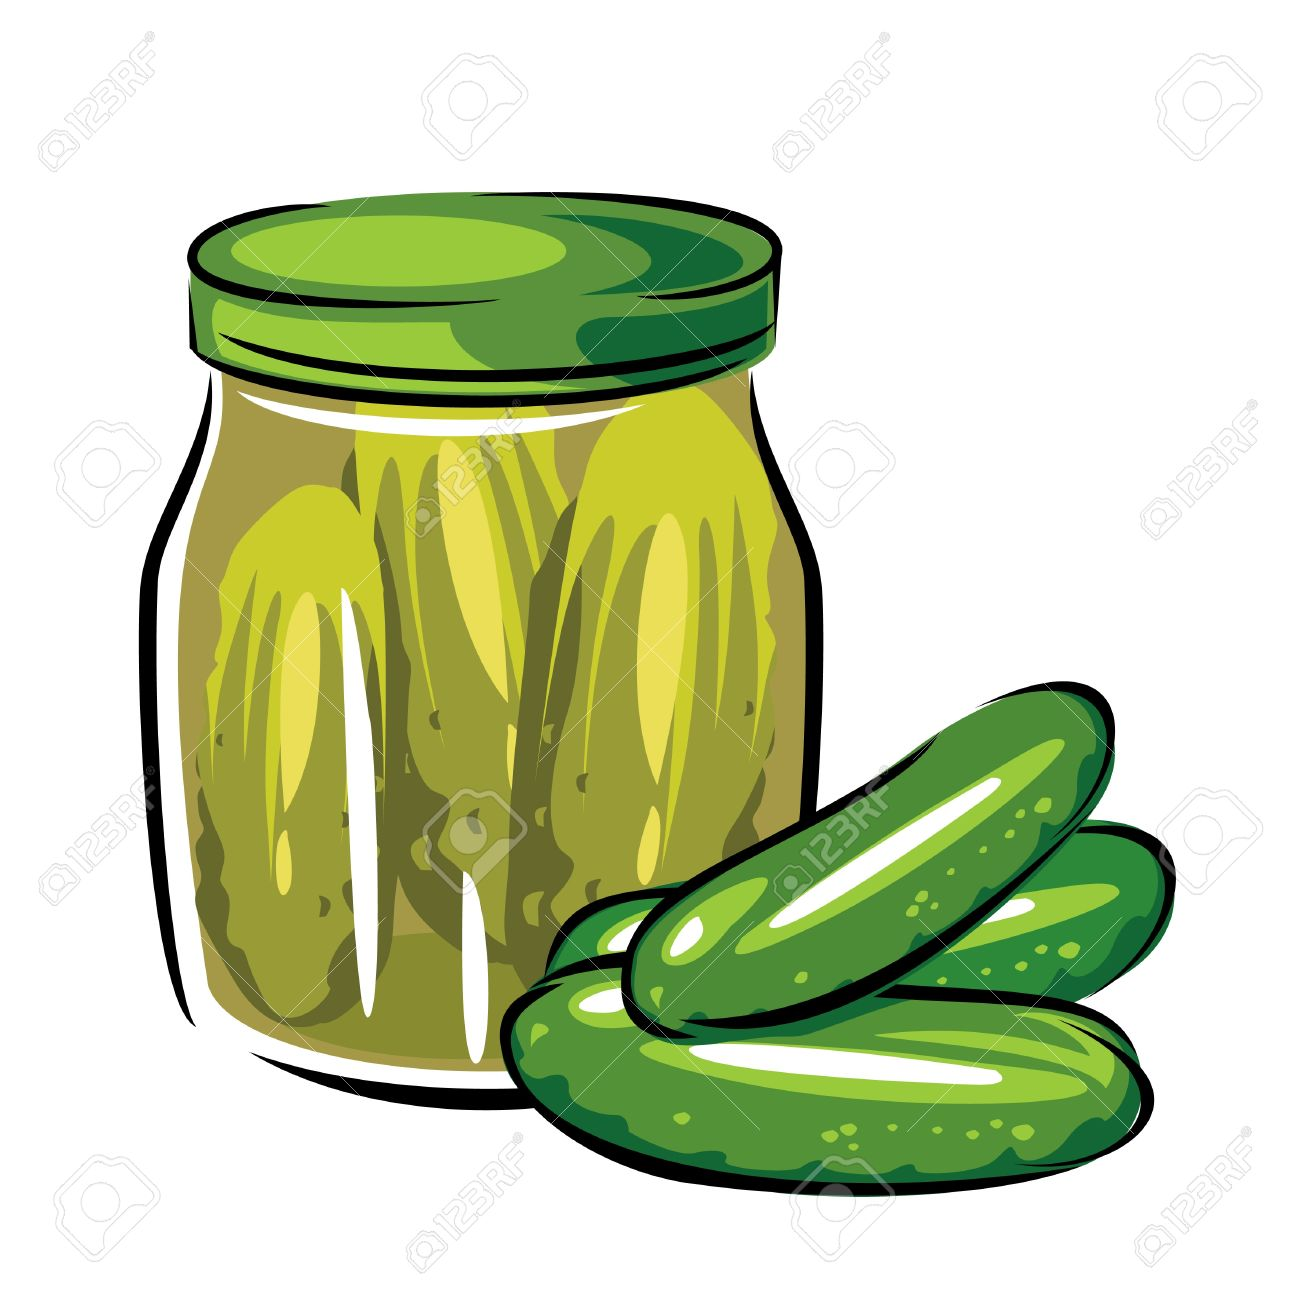 5 440 pickle cliparts stock vector and royalty free pickle rh 123rf com dill pickle clip art pickle ball clip art